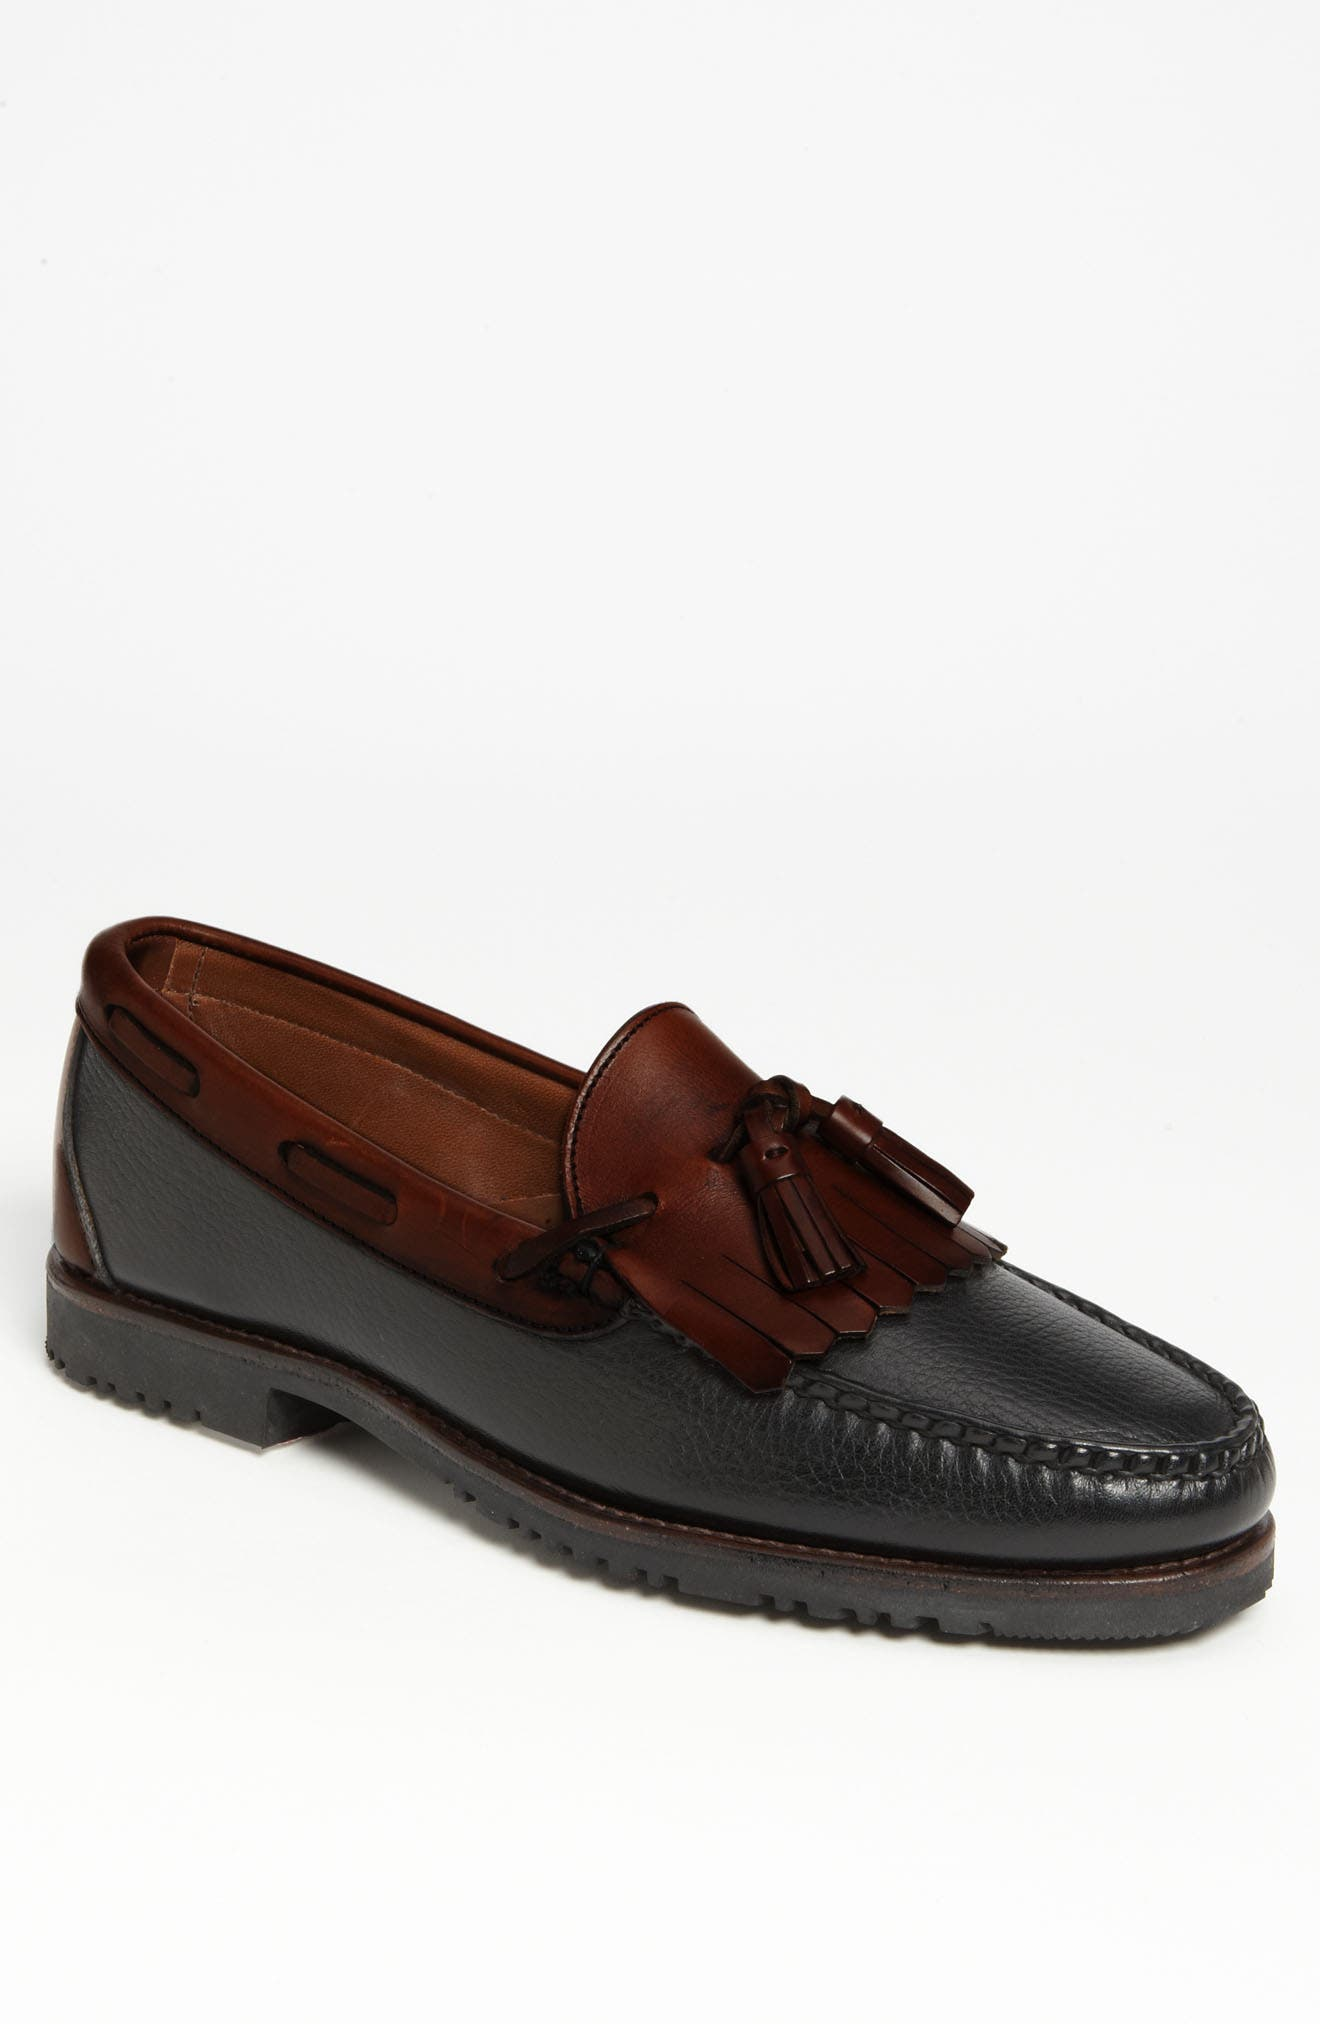 ALLEN EDMONDS, 'Nashua' Tassel Loafer, Alternate thumbnail 4, color, BLACK/ BROWN